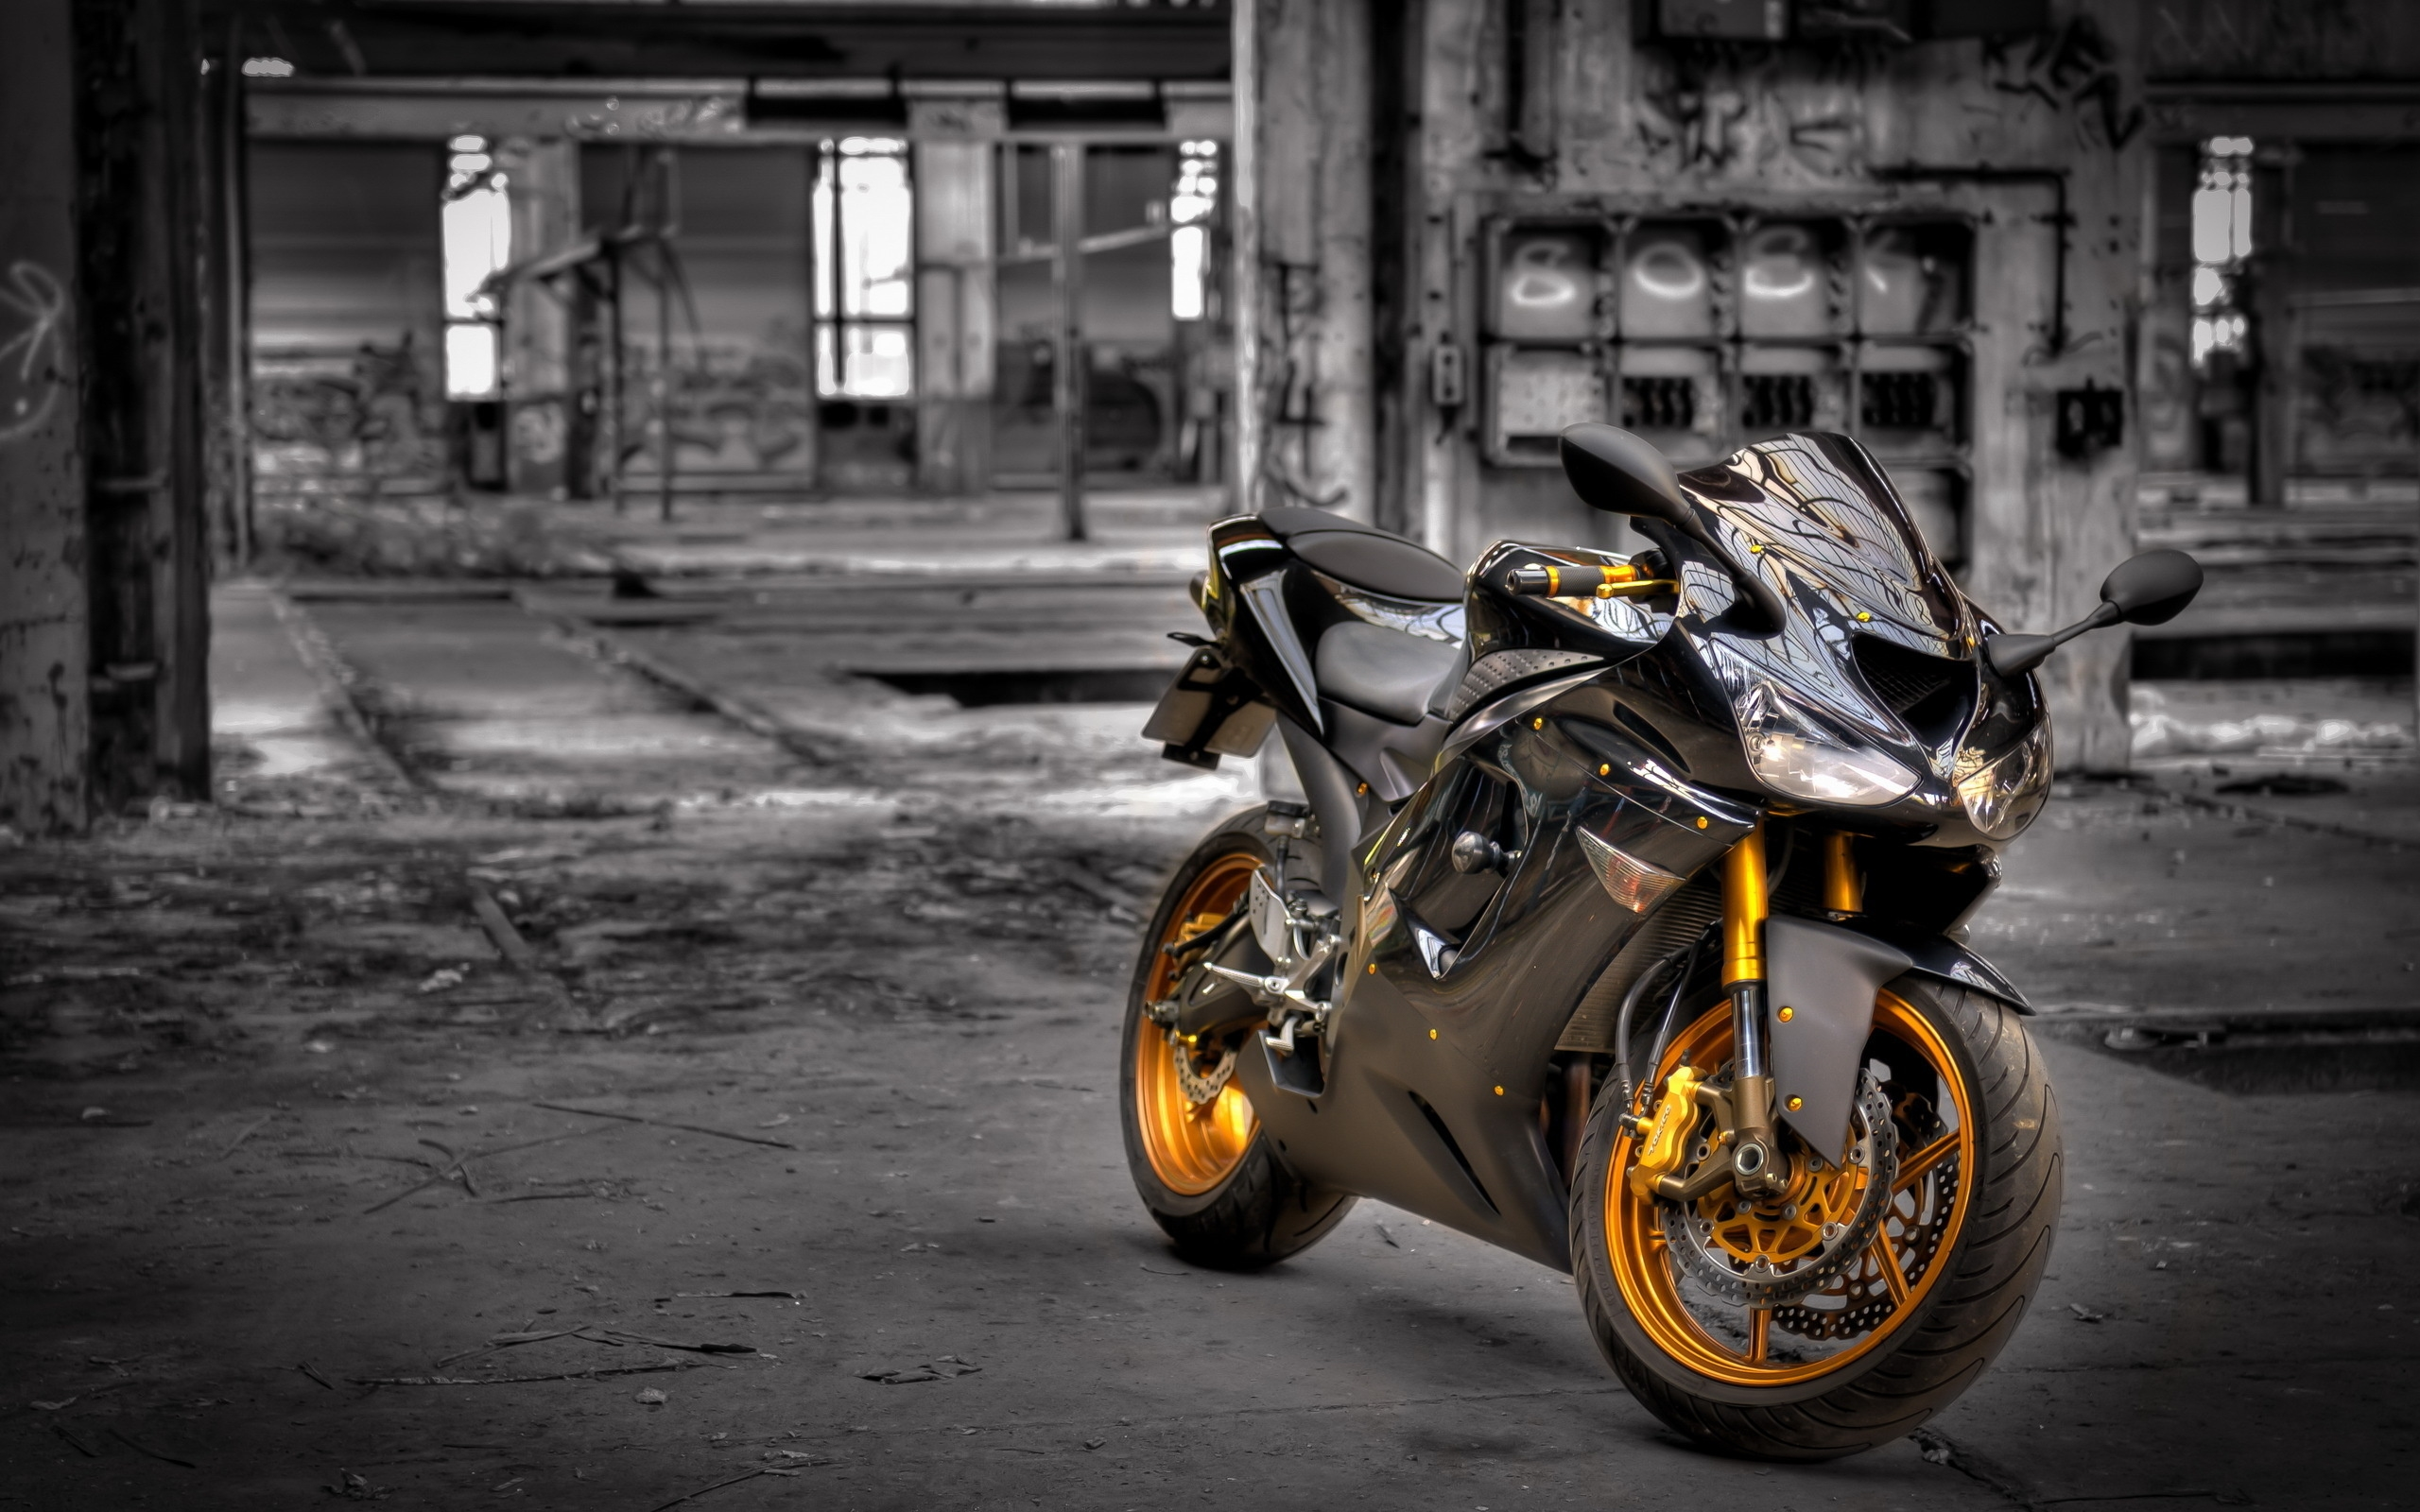 Kawasaki Zx6R HD Bikes 4k Wallpapers Images Backgrounds